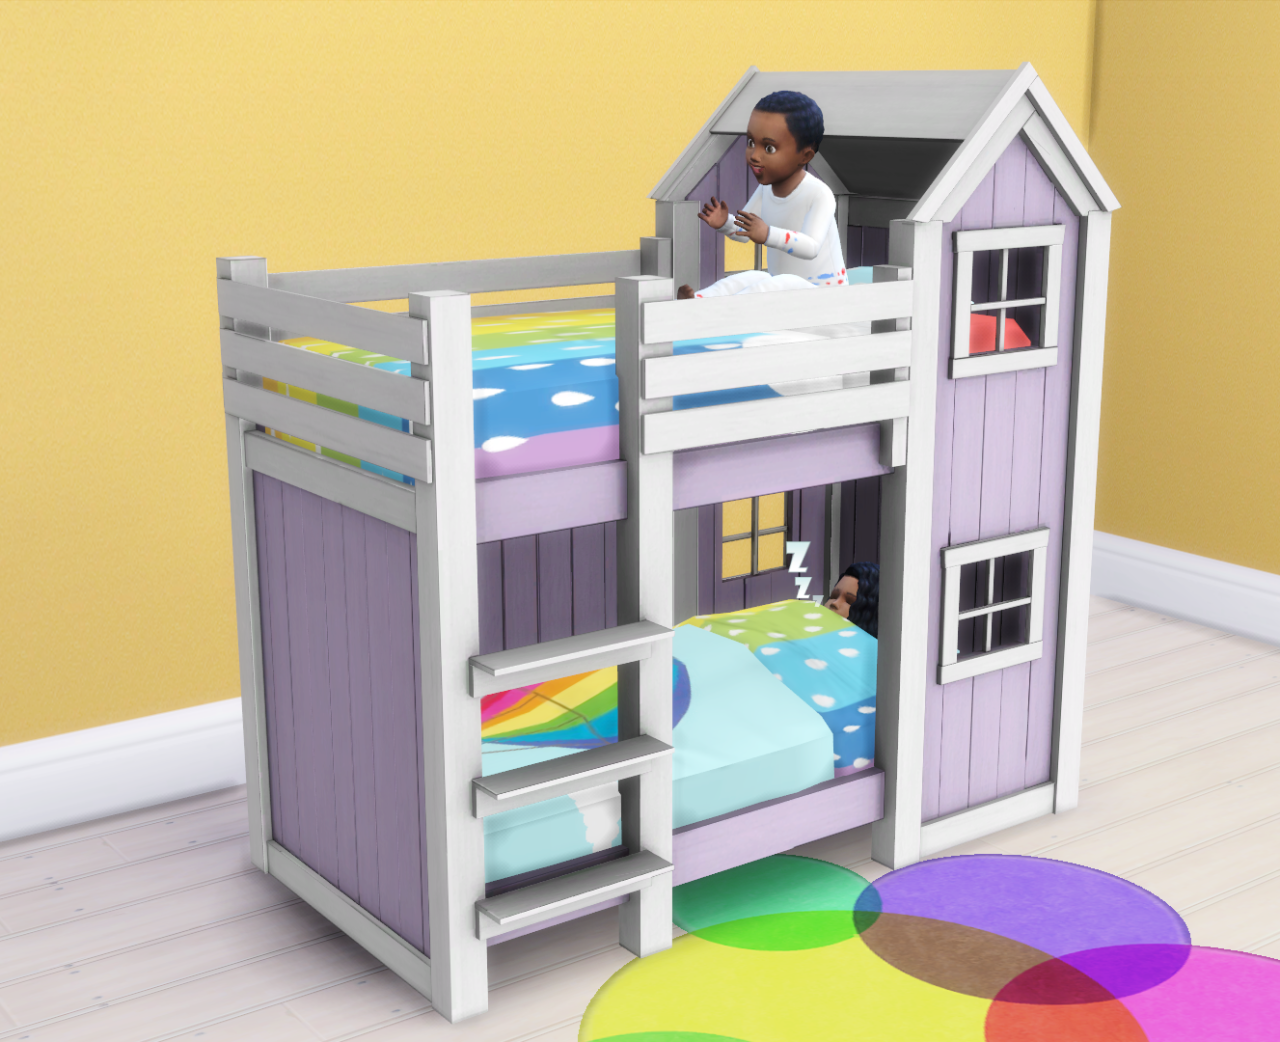 My Sims 4 Blog Separated Toddler Mattresses In 2 Heights